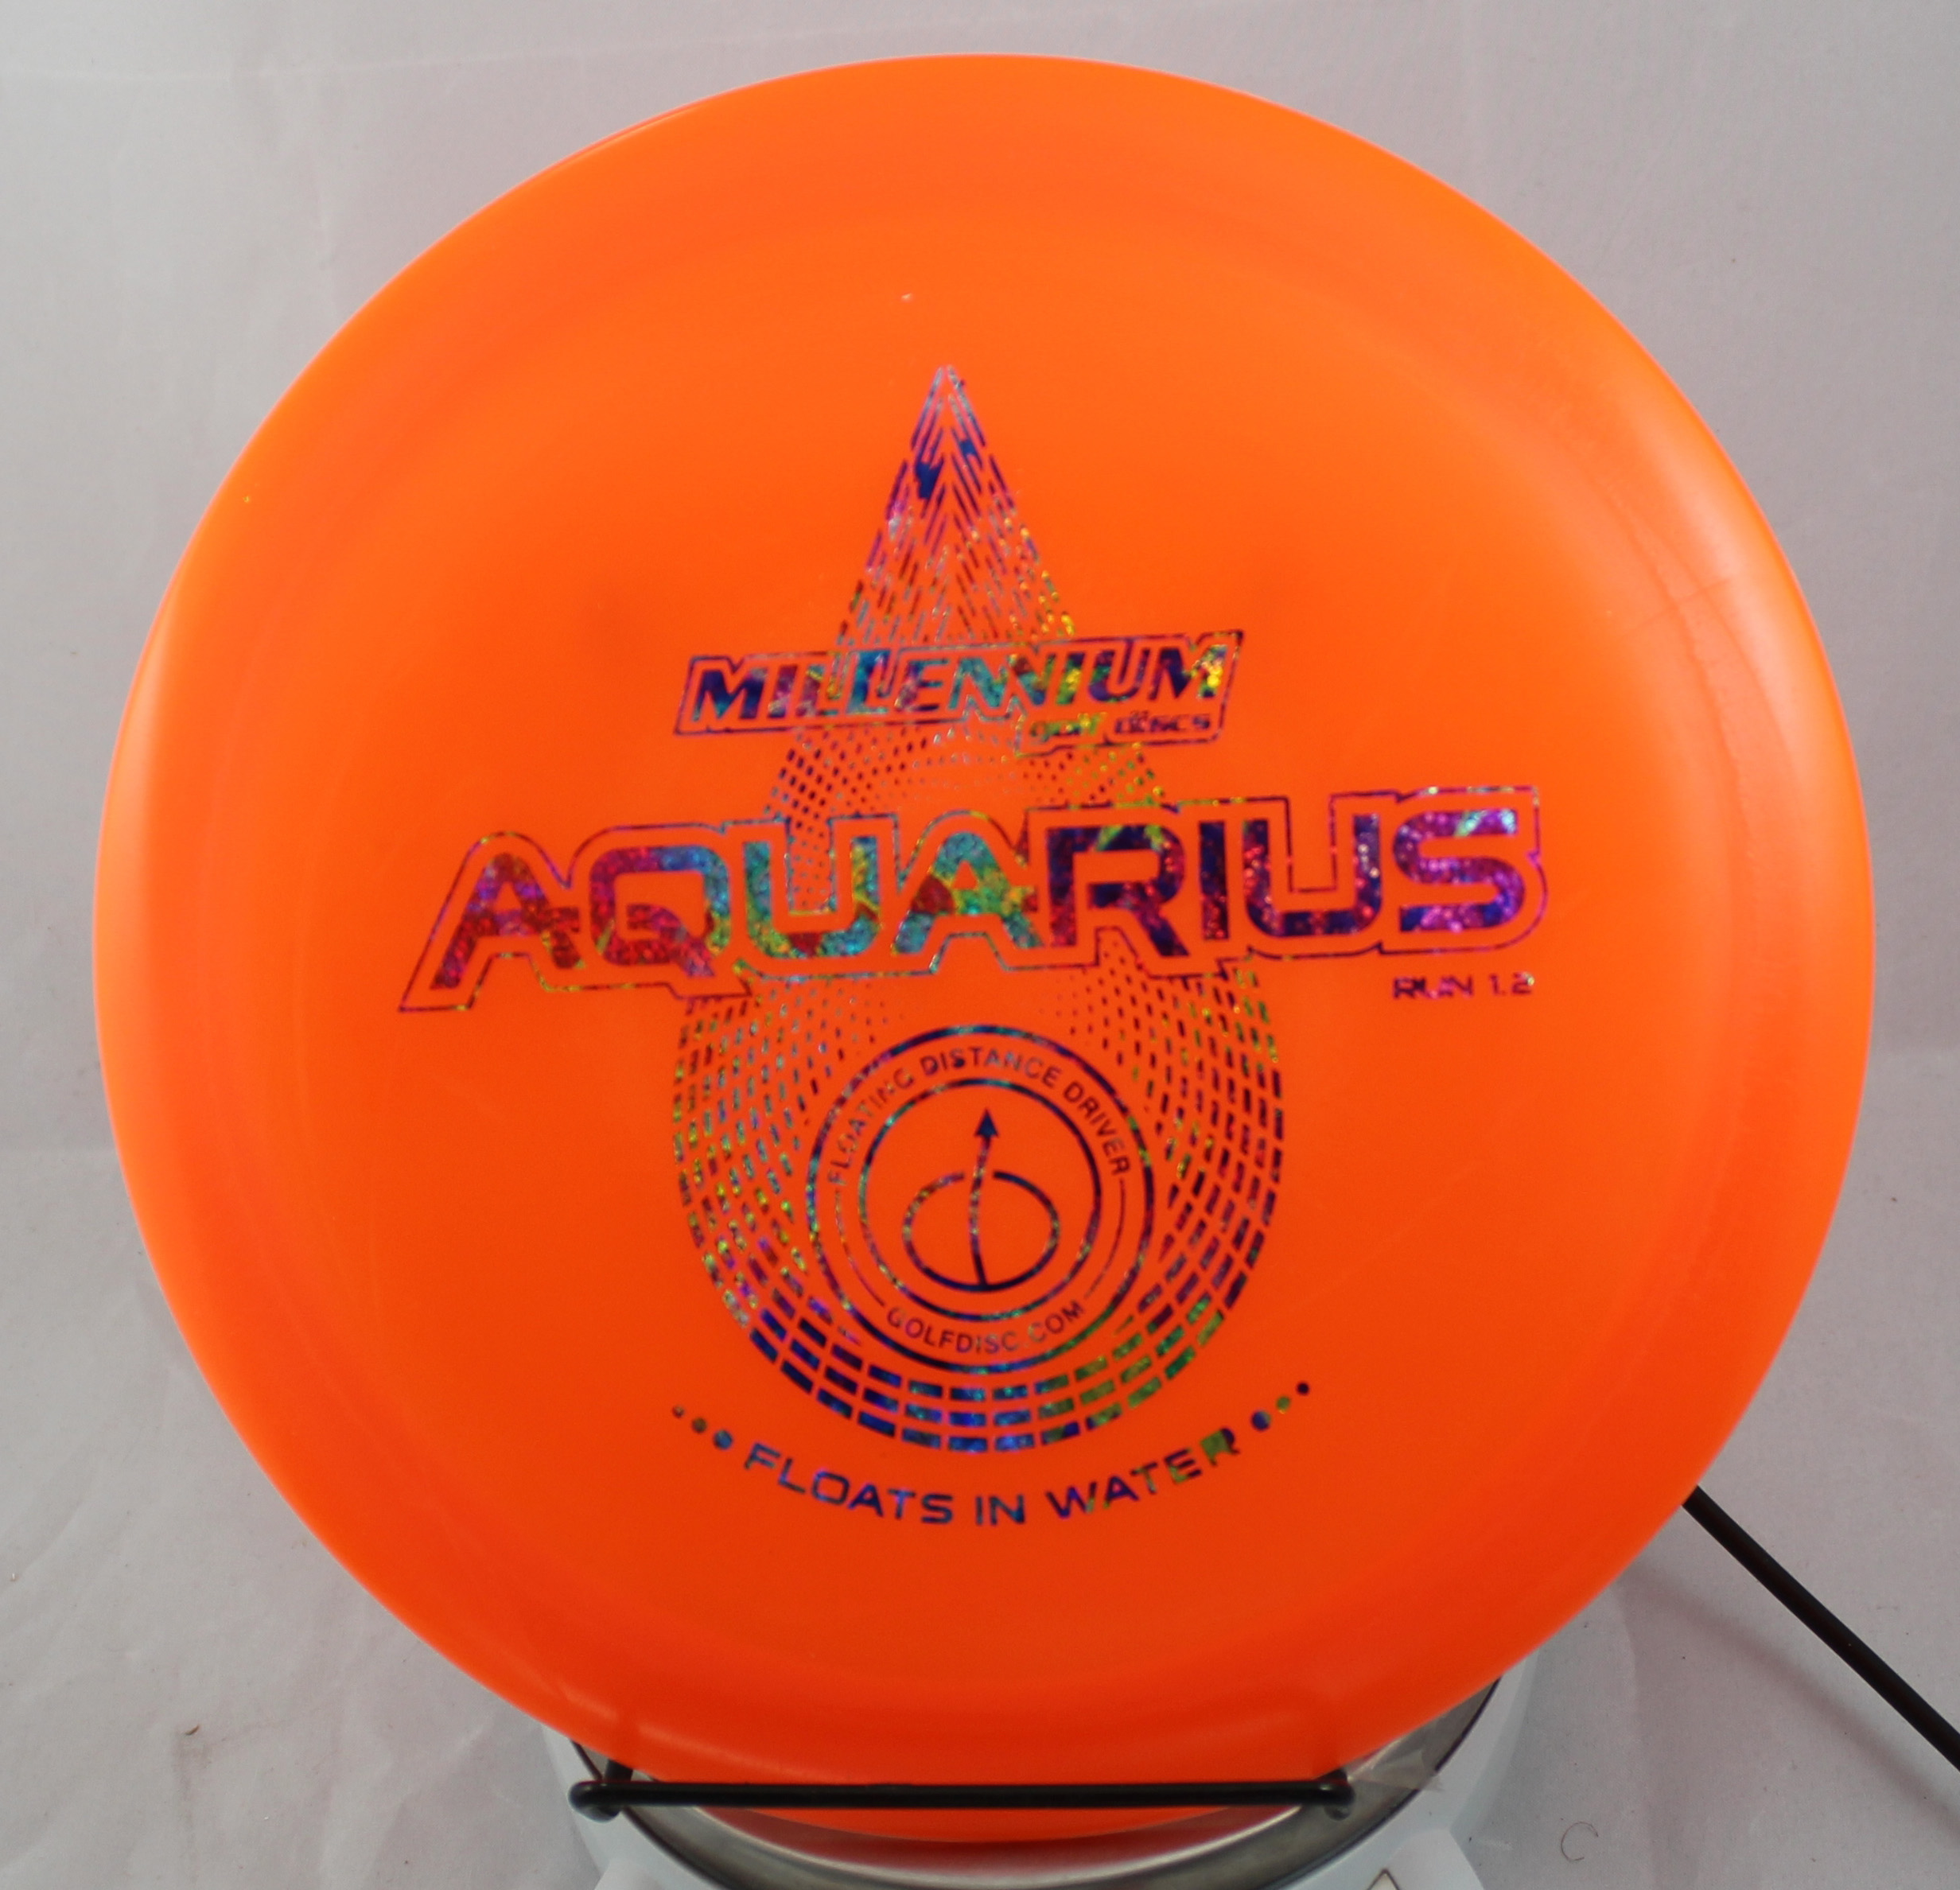 Aquarius, Run 1.2